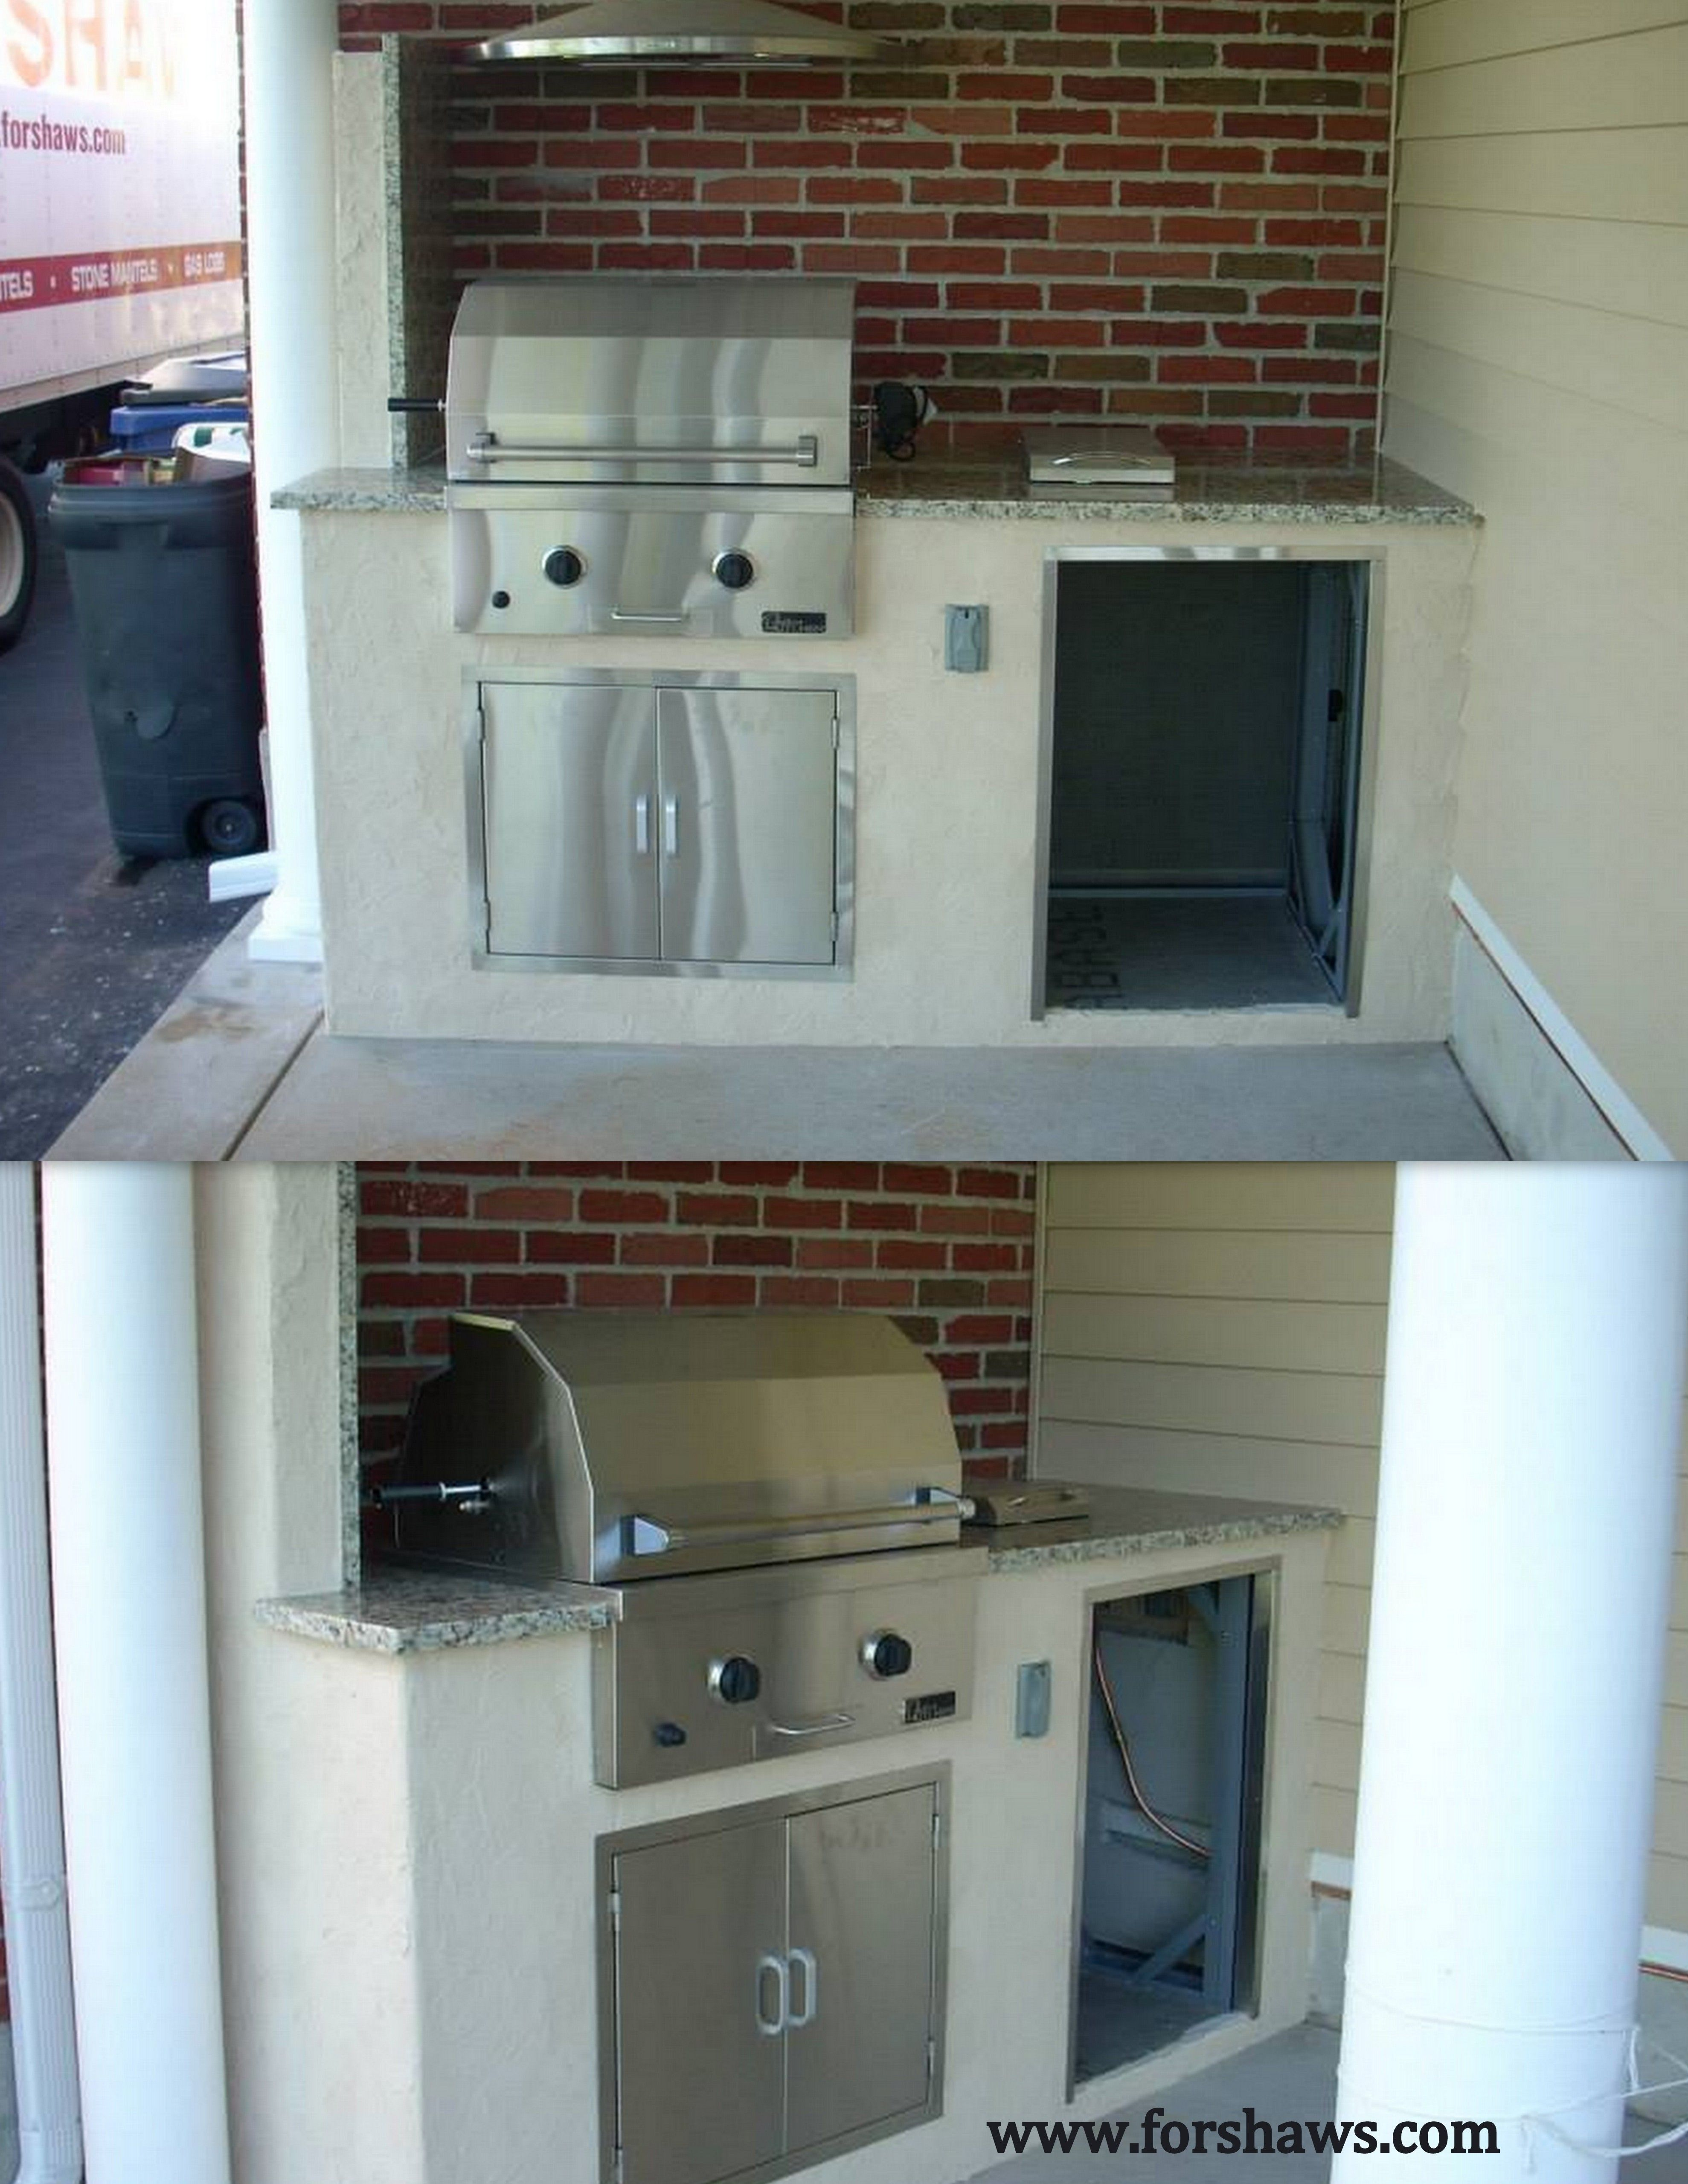 An Outdoor Kitchen Can Go Anywhere Even A Small Condo Space That Is Big On Style Outdoor Cooking Spaces Outdoor Kitchen Hearth And Patio